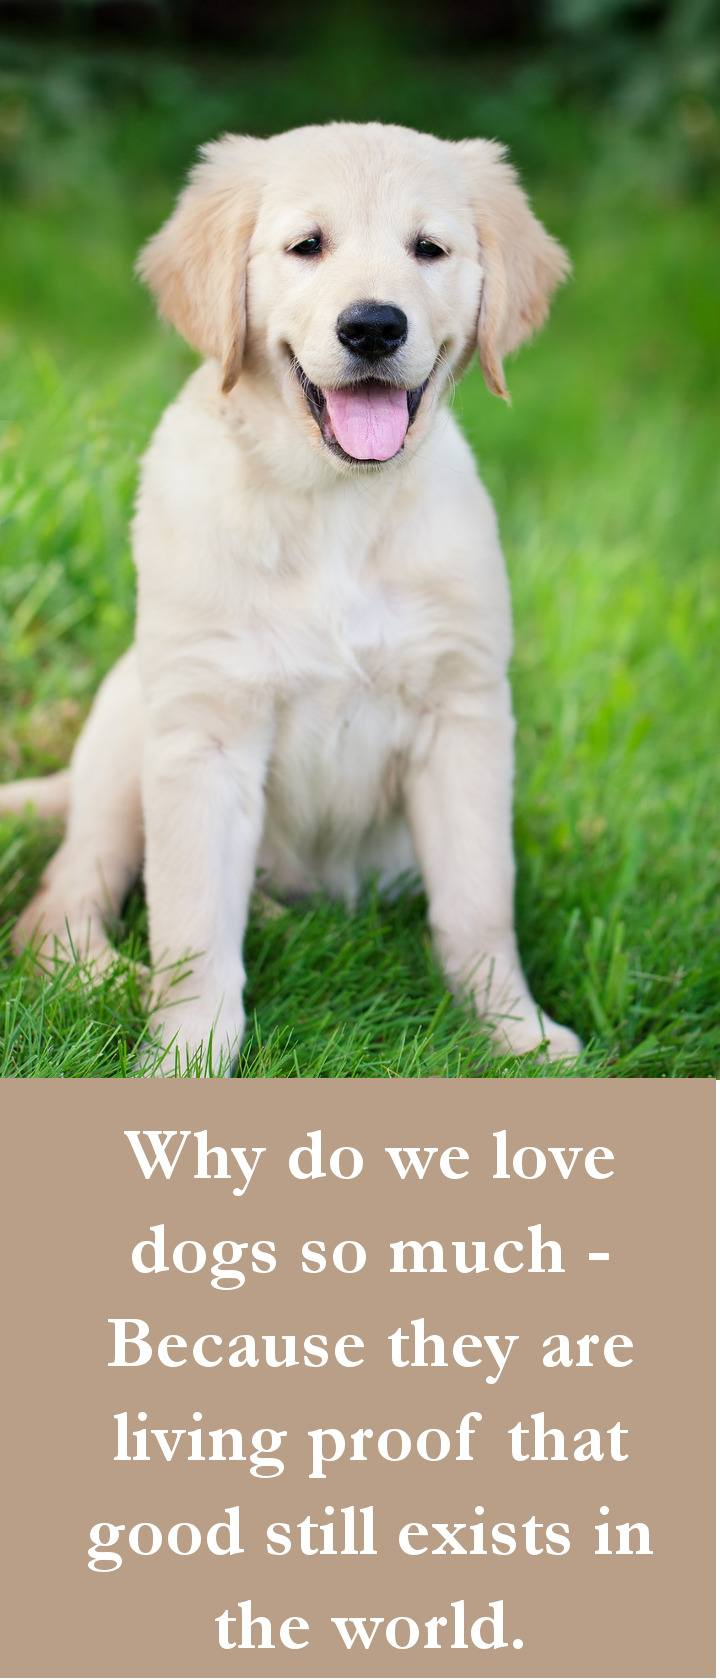 Why do we love dogs so much - Because they are living proof tDog Quotes - Why do we love dogs so much - Because they are living proof that good still exists in the world.hat good still exists in the world.